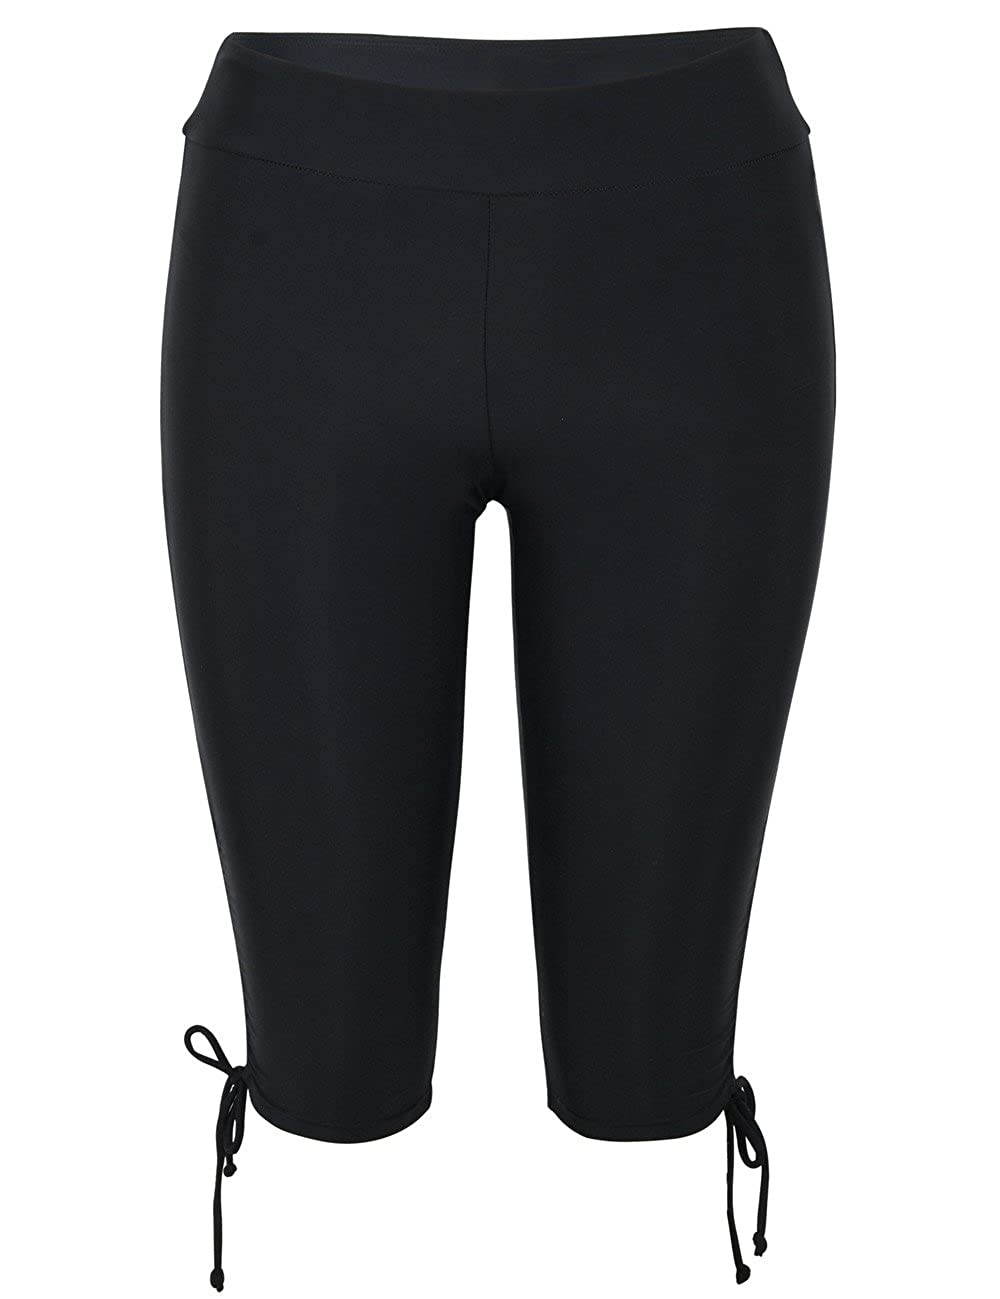 81ddce306c2 High waist elastic band design can be effectively control tummy. Built-in  soft triangular trousers. Just the length of the knee.